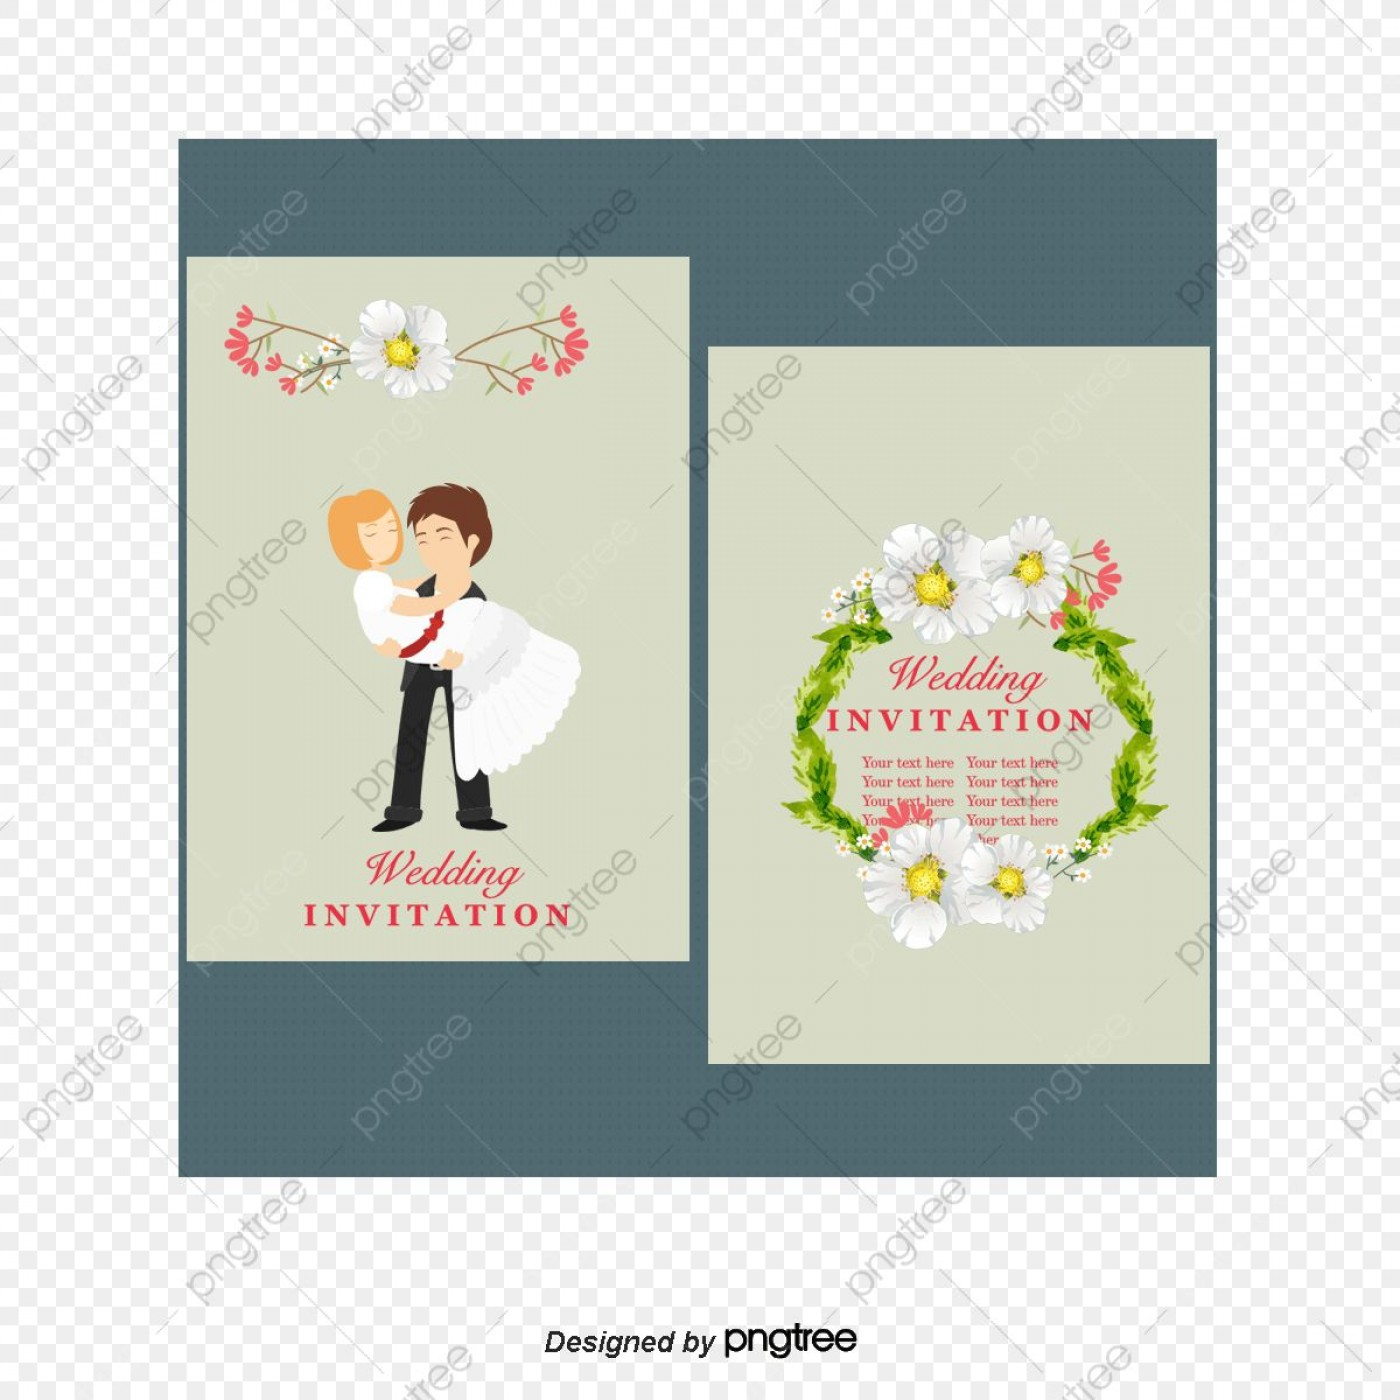 007 Impressive Free Wedding Invitation Template Download Highest Clarity  Psd Card Indian1400